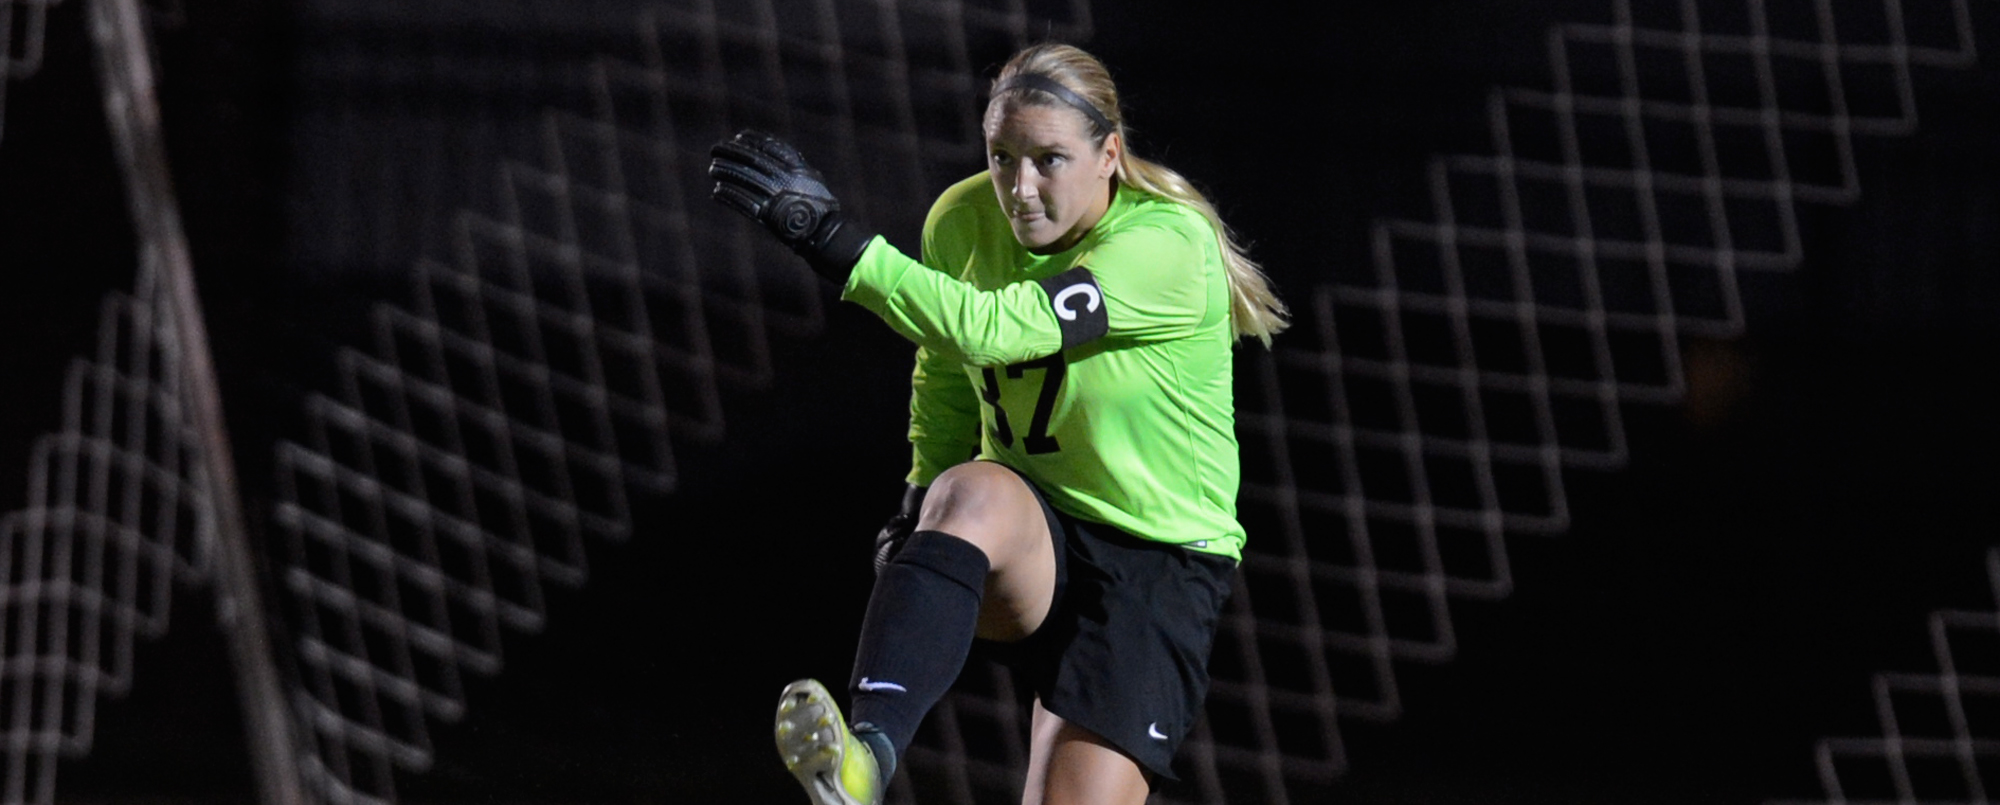 First-half goal holds up, Storm earn shutout win